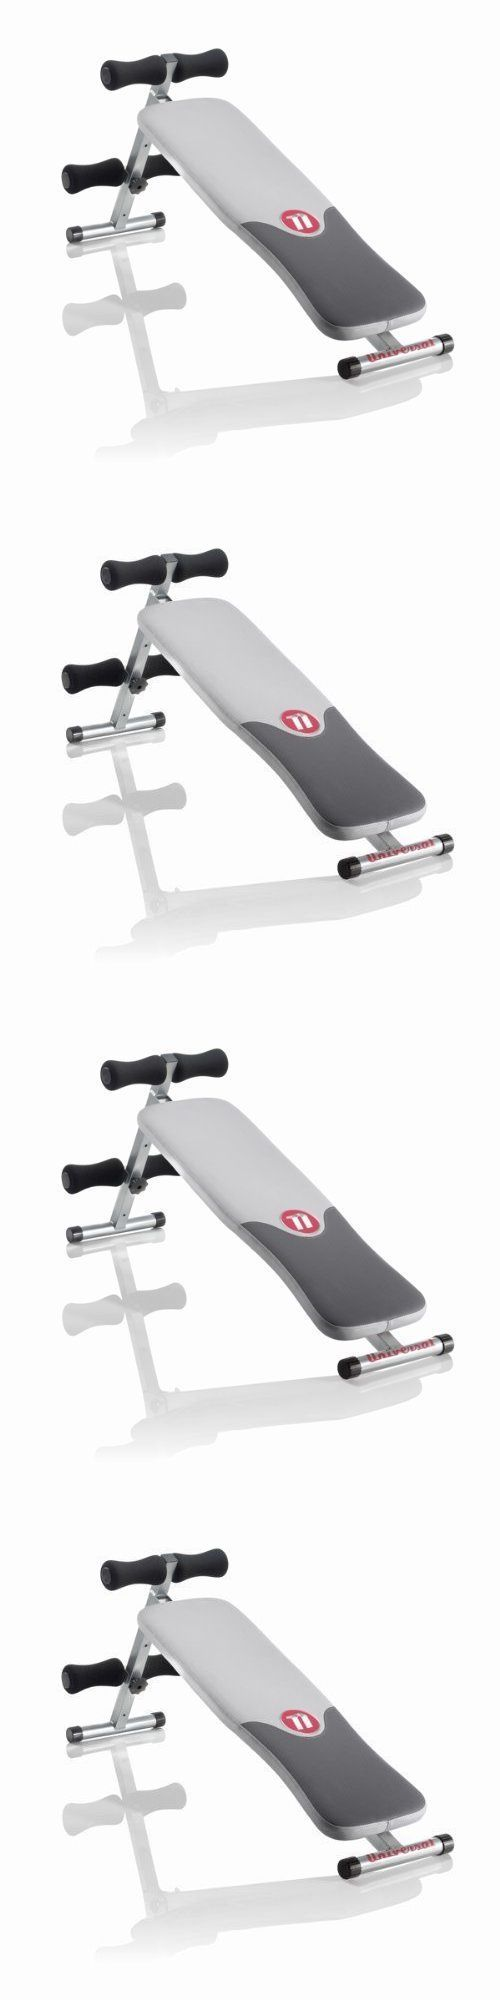 Benches 15281: Flat Incline Decline Bench Fitness Abs Workout Board Exercise Crunch Home Gym Us -> BUY IT NOW ONLY: $63.49 on eBay! https://www.musclesaurus.com/flat-stomach-exercises/